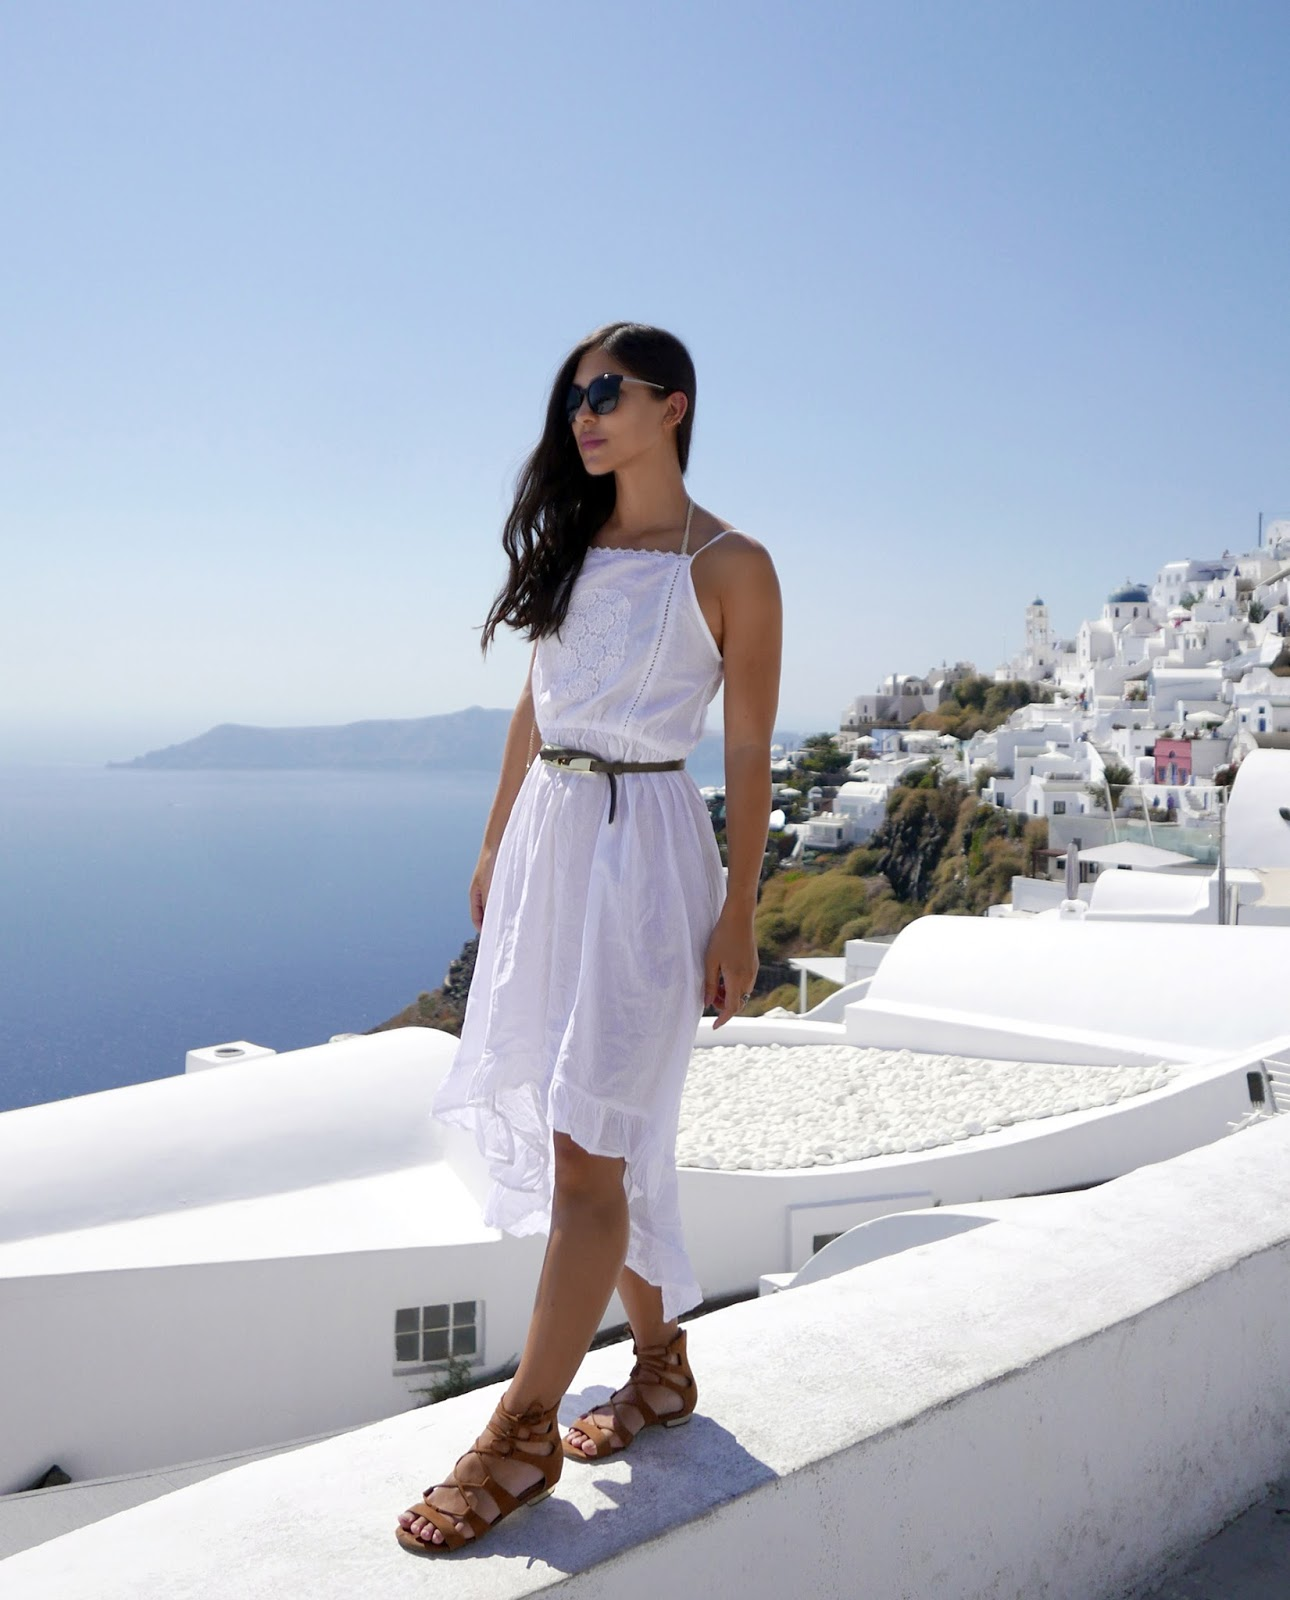 Euriental | luxury travel & style | Santorini Greece Imerovigli